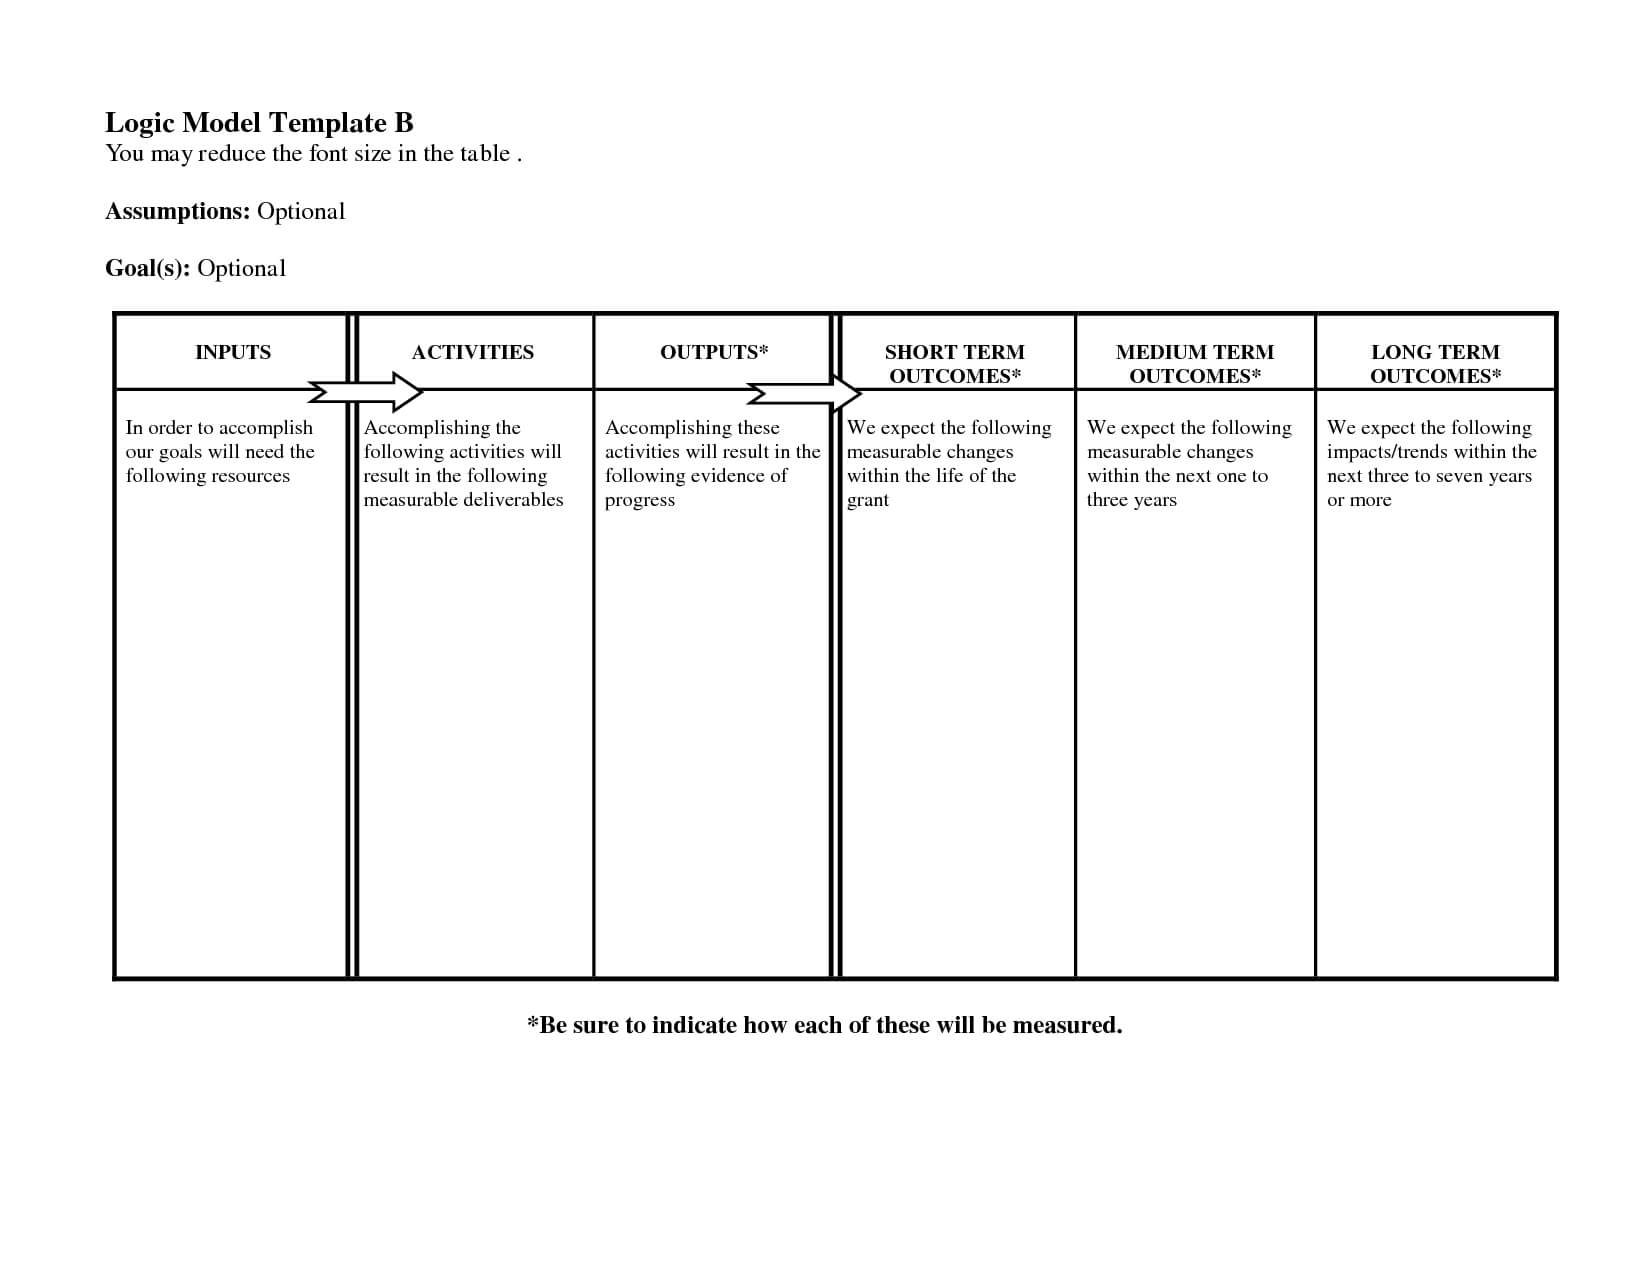 Free Logic Templates Download ] - Of Social Media Marketing With Regard To Logic Model Template Word